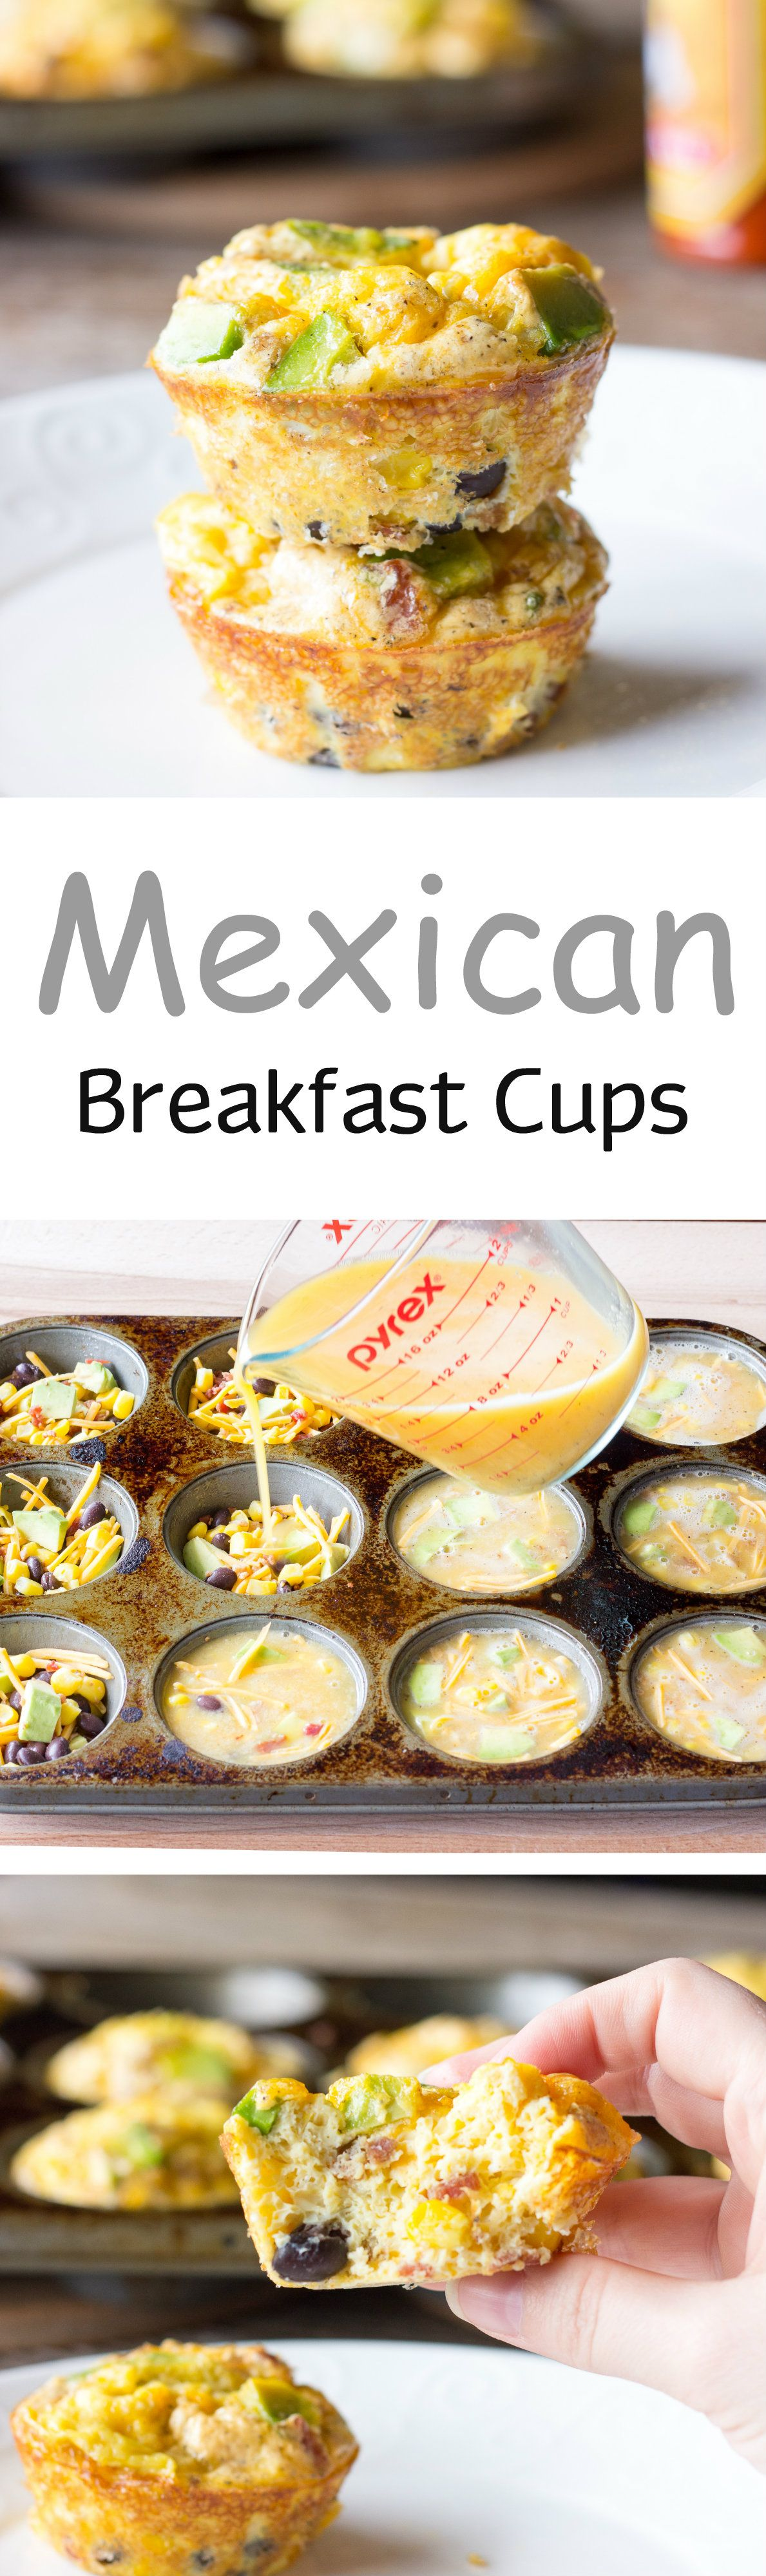 Mexican Breakfast Cups - omnomnom